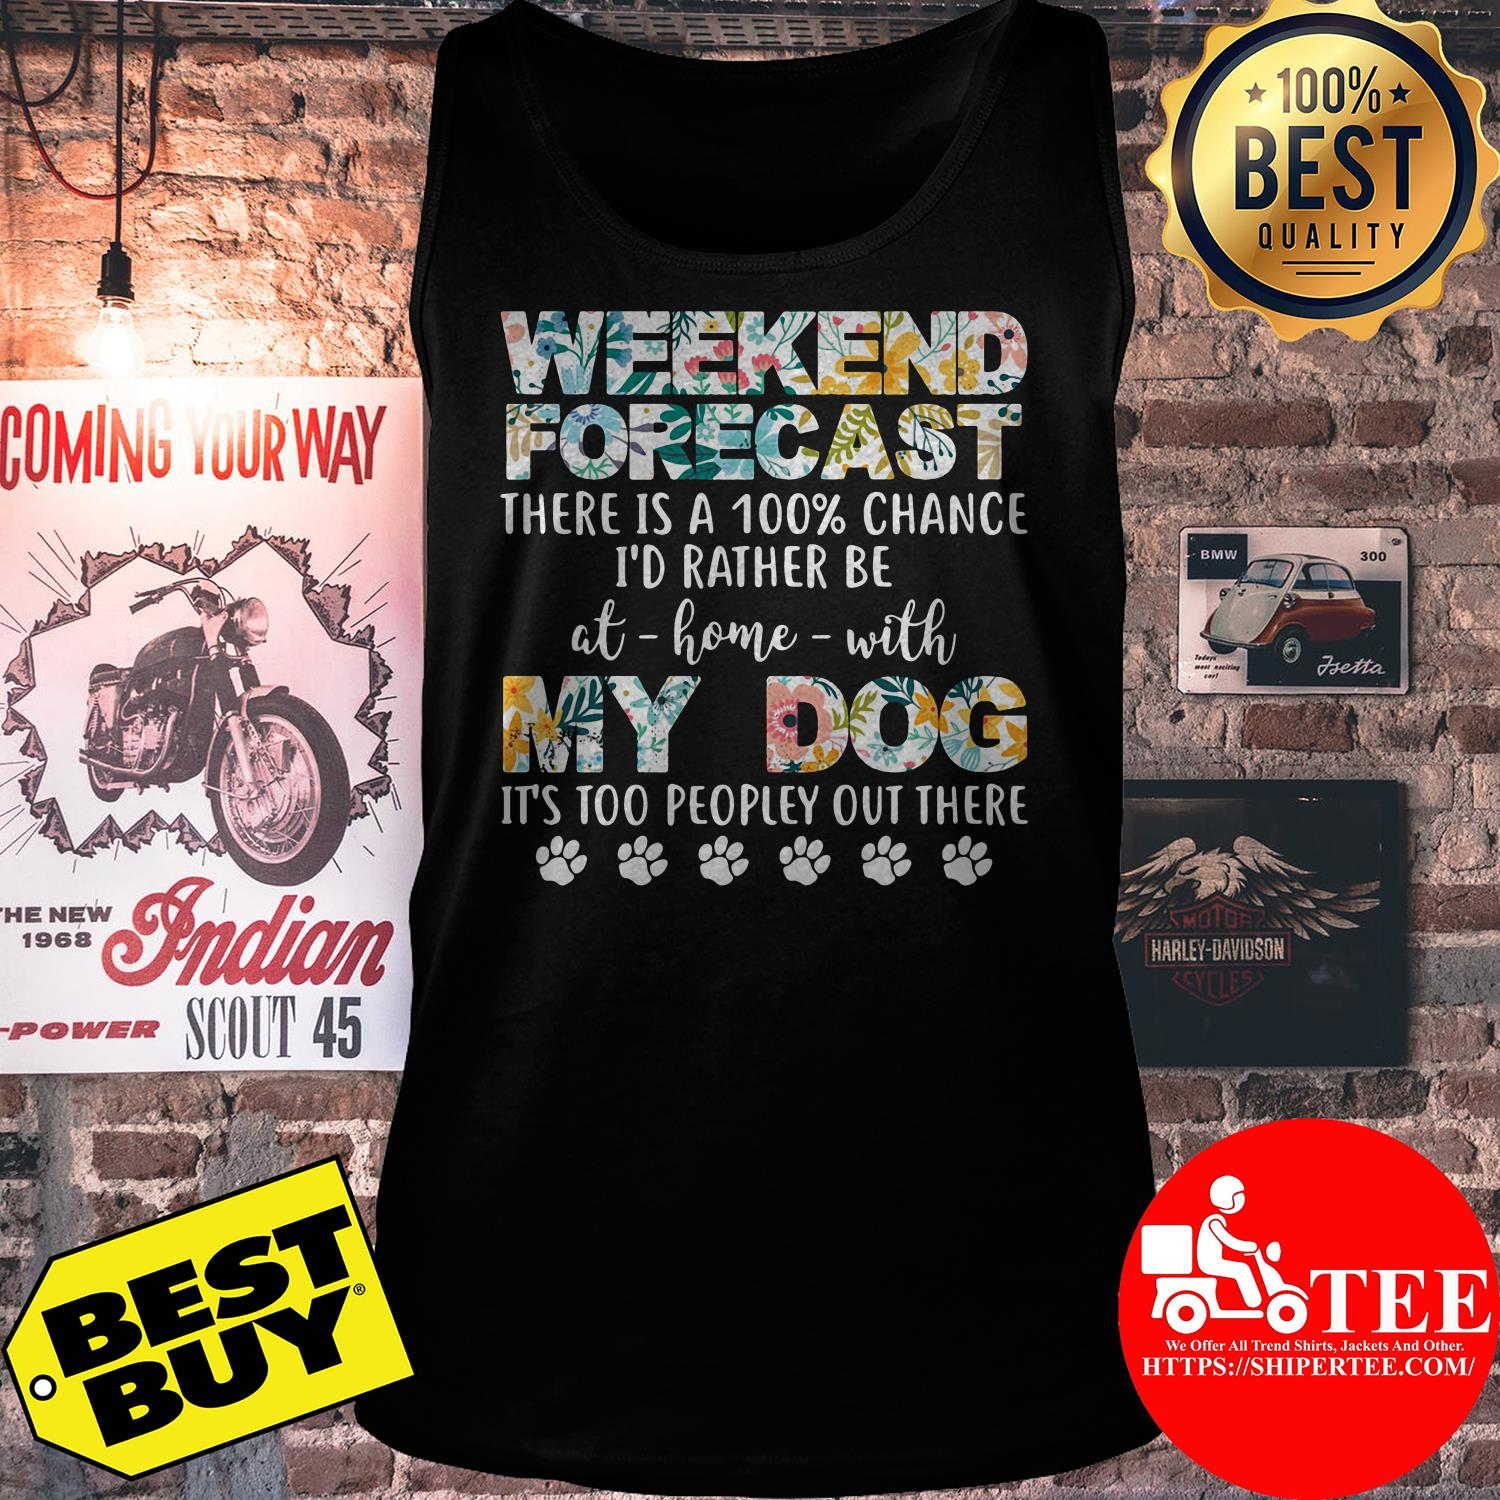 Weekend forecast there is a 100% chance my dog flower tank top